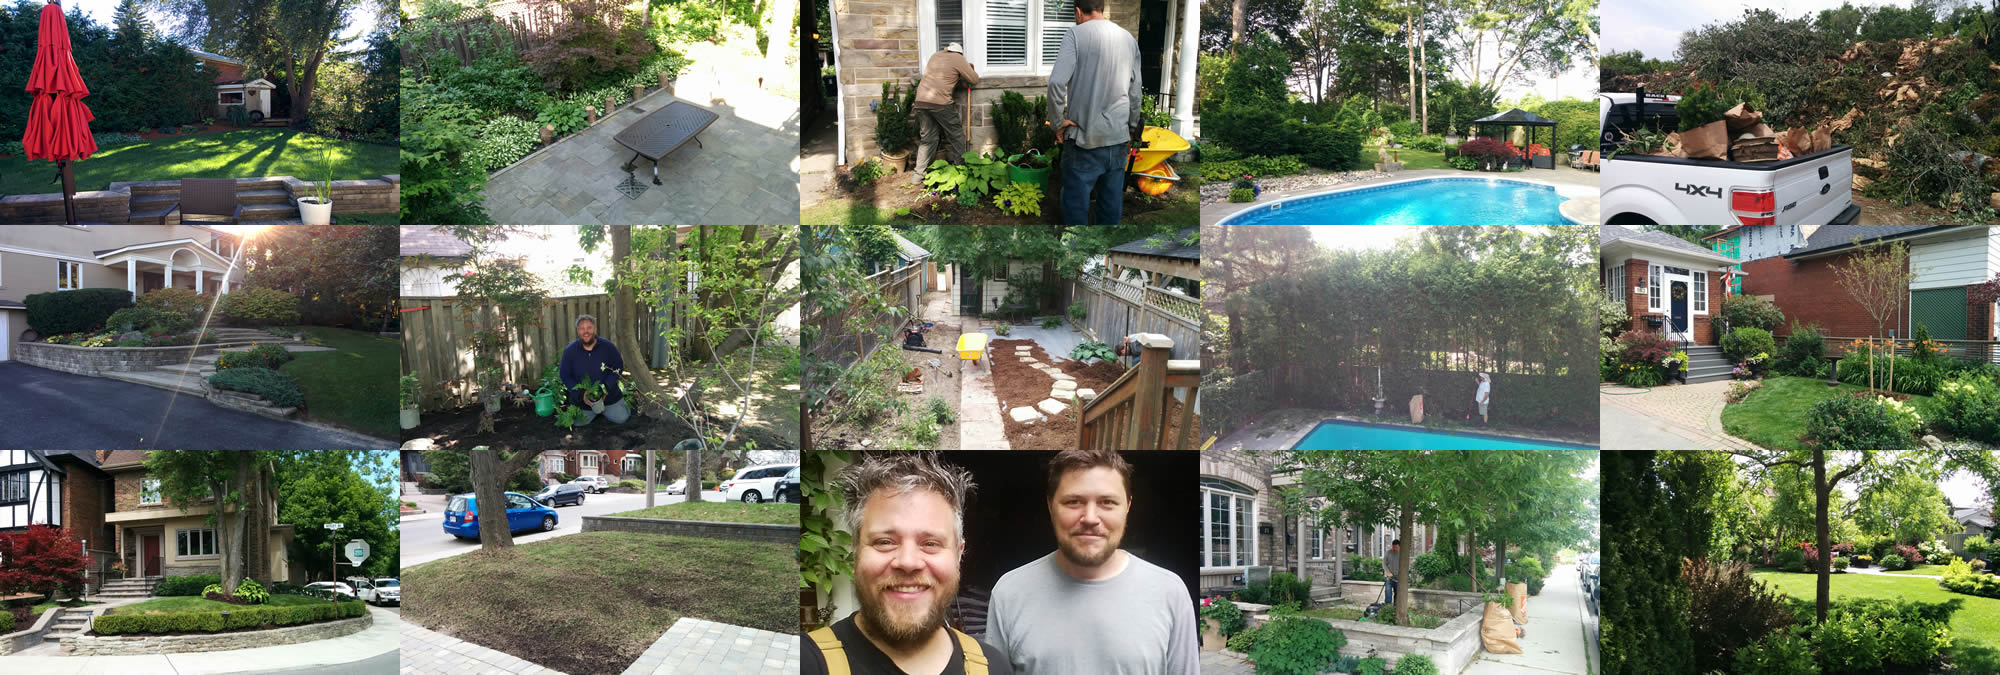 Lawn care and gardening services from Gardenzilla Lawn & Garden in Midtown Toronto - selection of jobsite photos